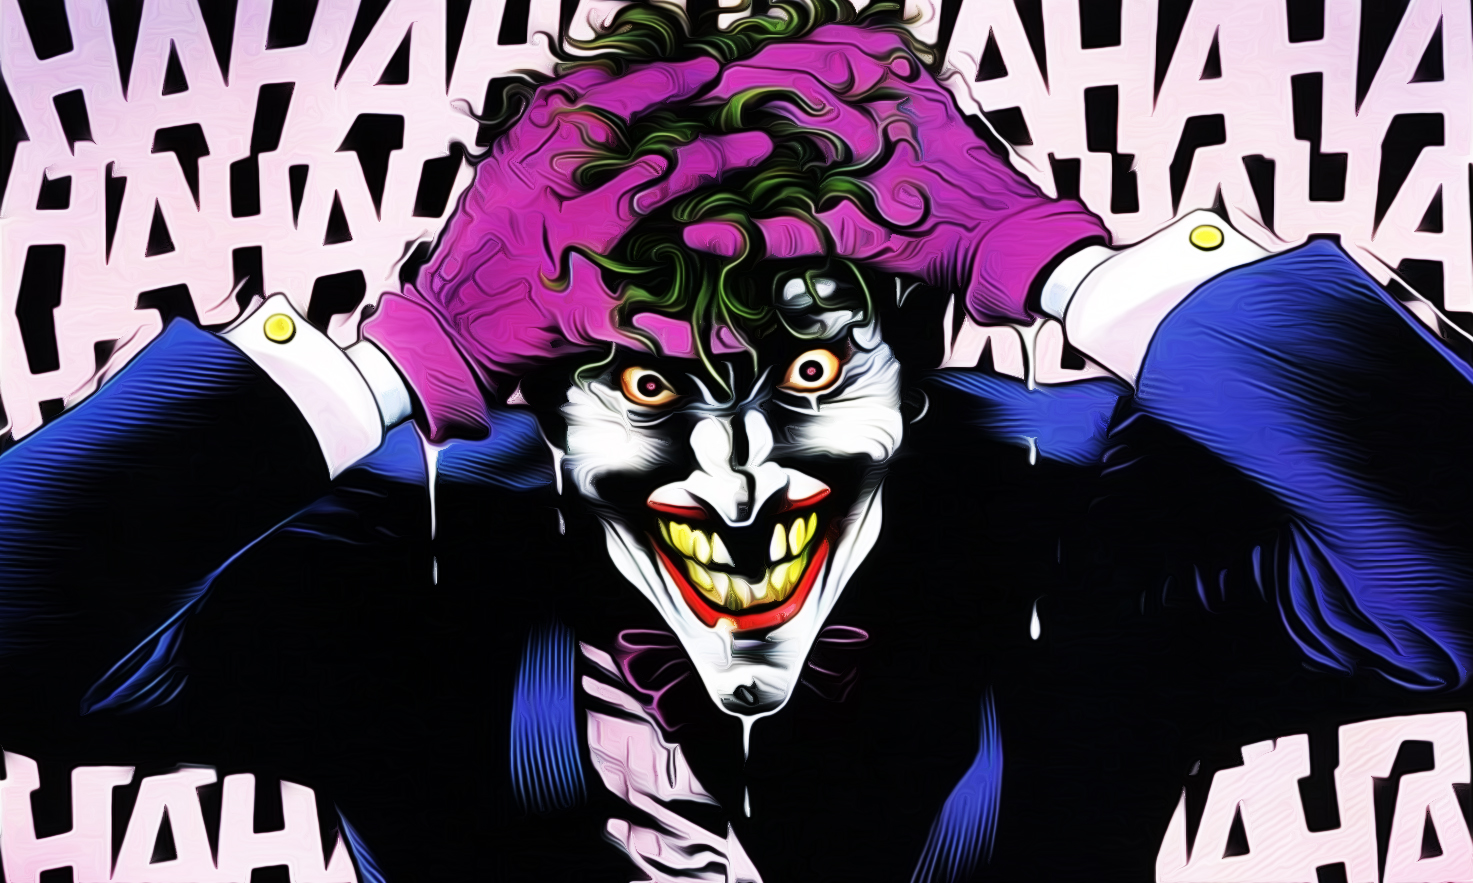 Comic Joker Wallpaper 1473x883